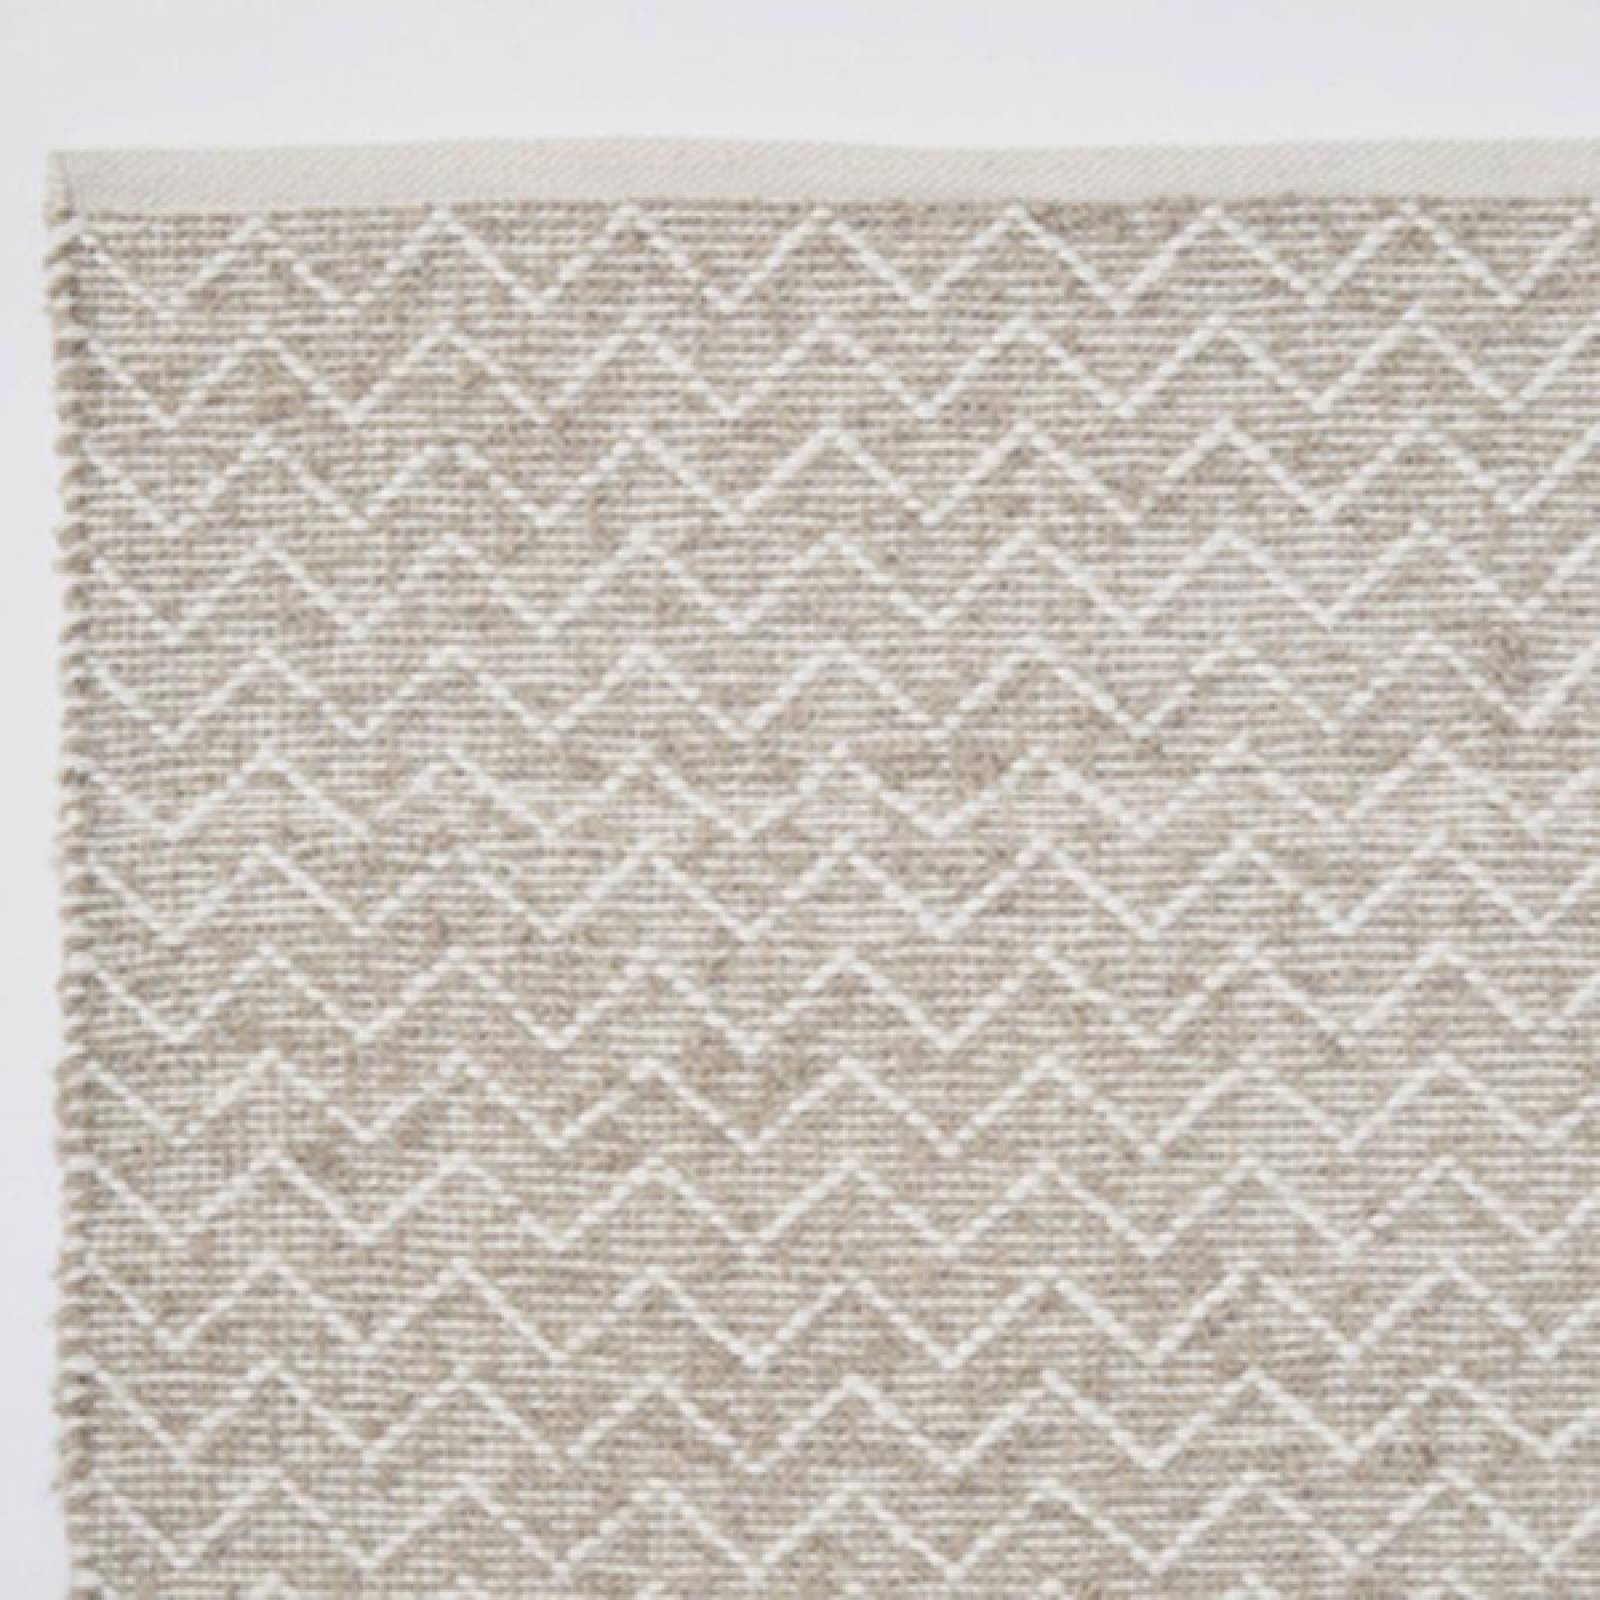 Chinchilla Chenille Rug 150x90cm Recycled Bottle Rug thumbnails